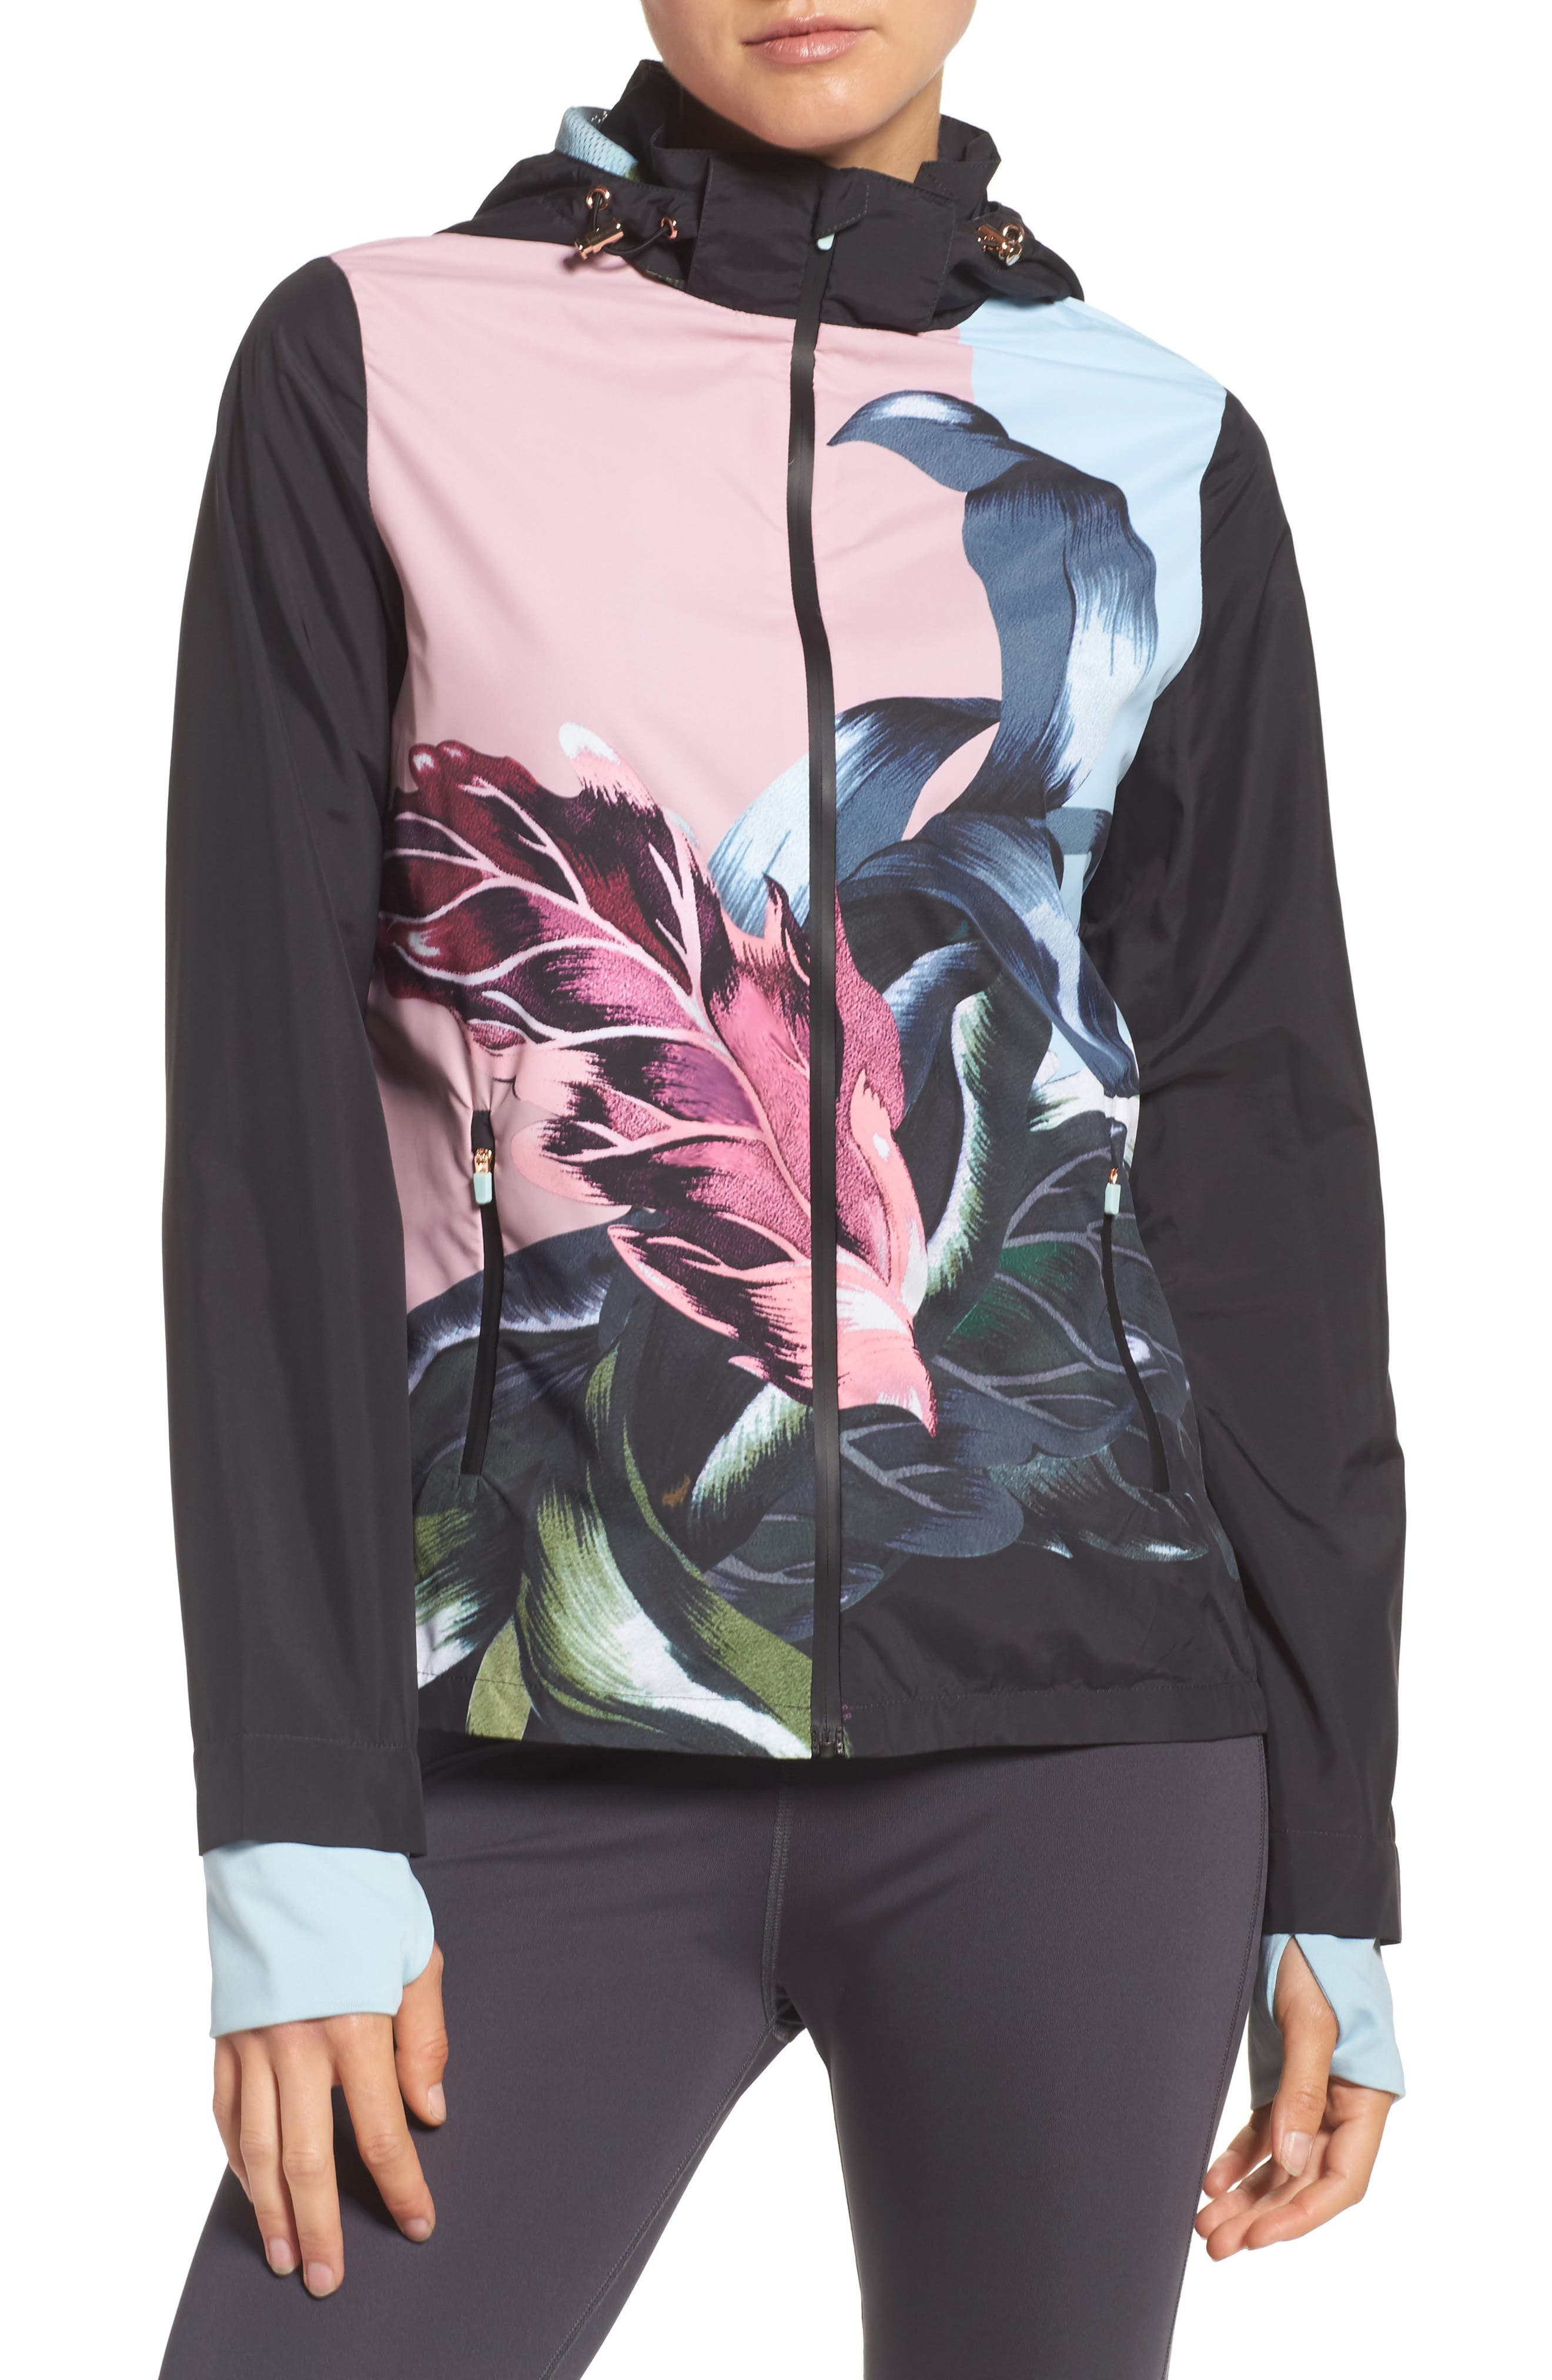 TED BAKER LONDON Eden Floral Print Jacket